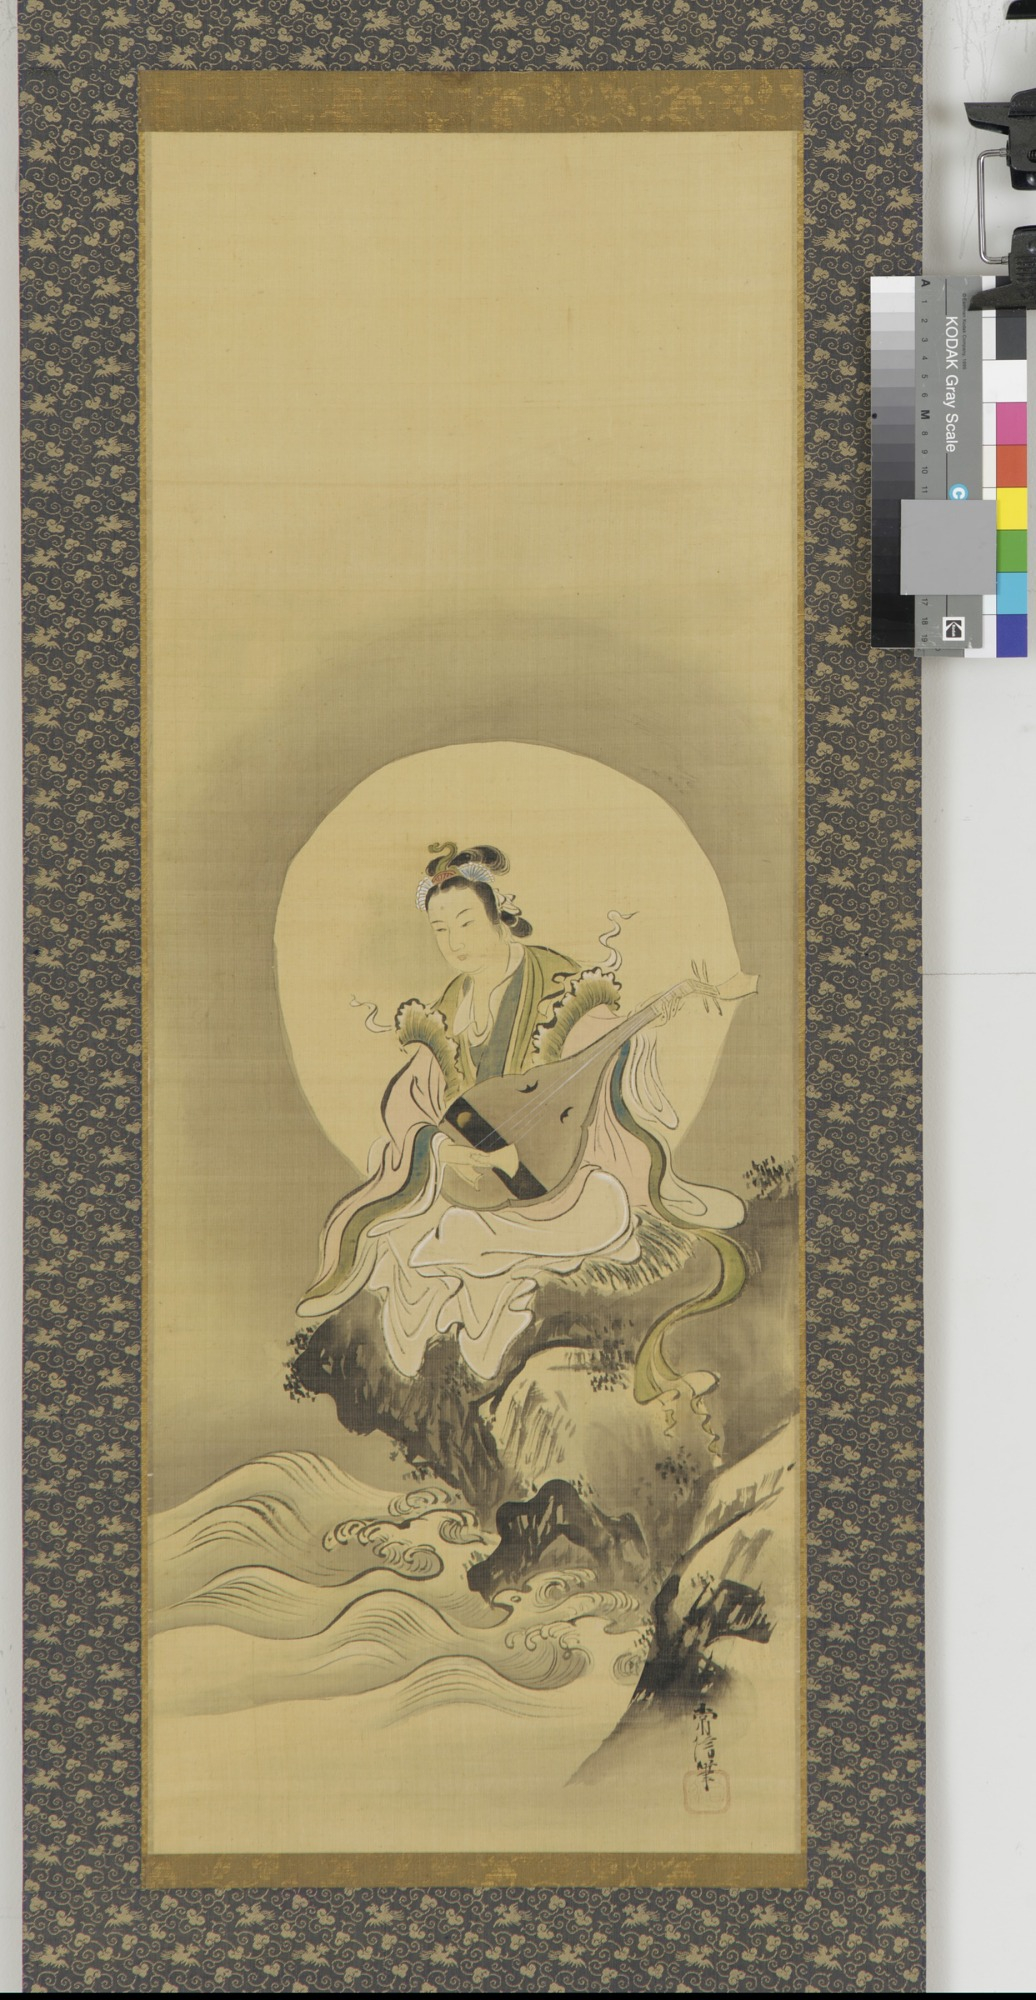 Benten (Sarasvati) seated on a rock